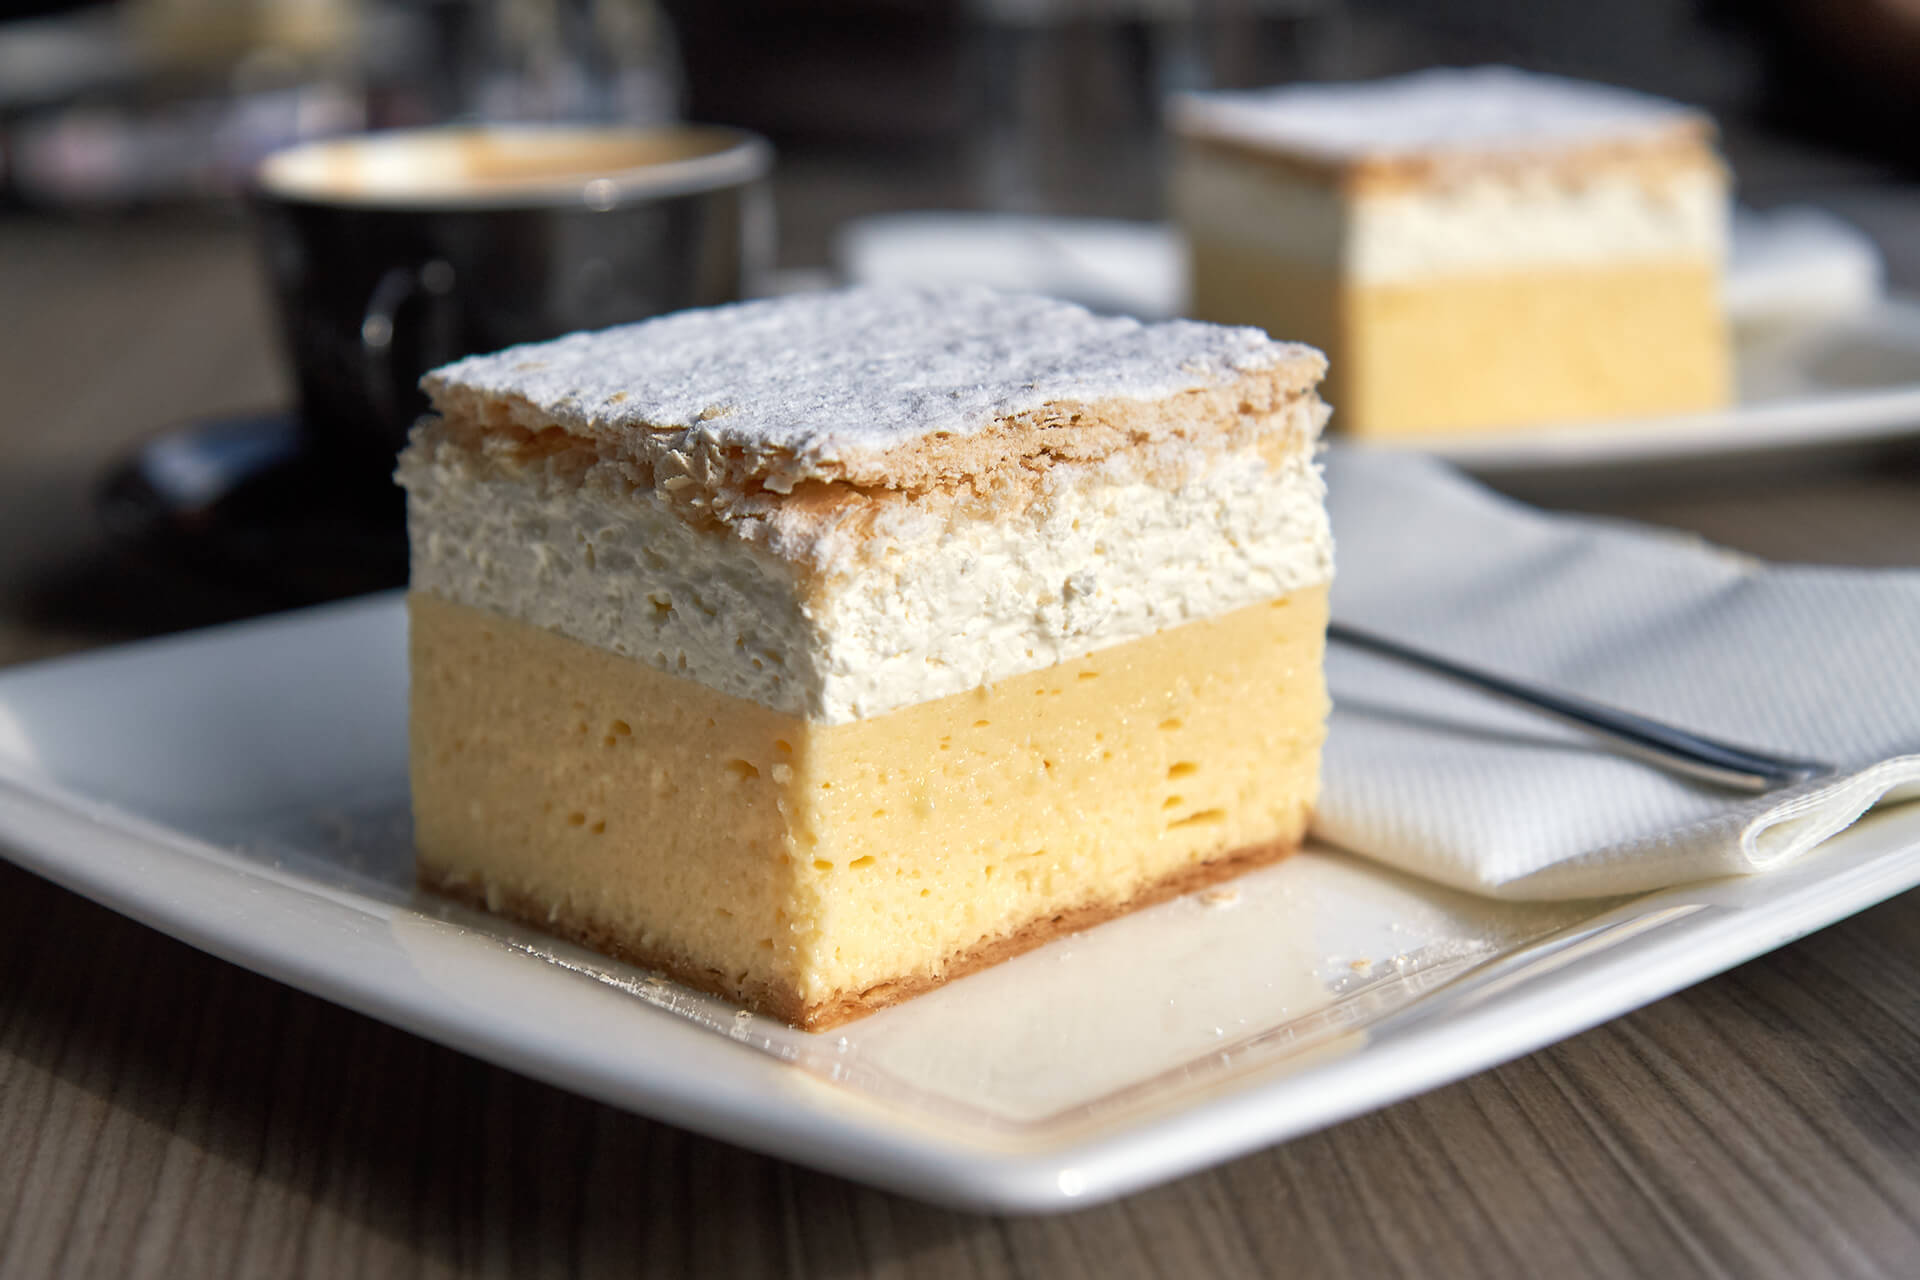 Slovenian cake from Bled